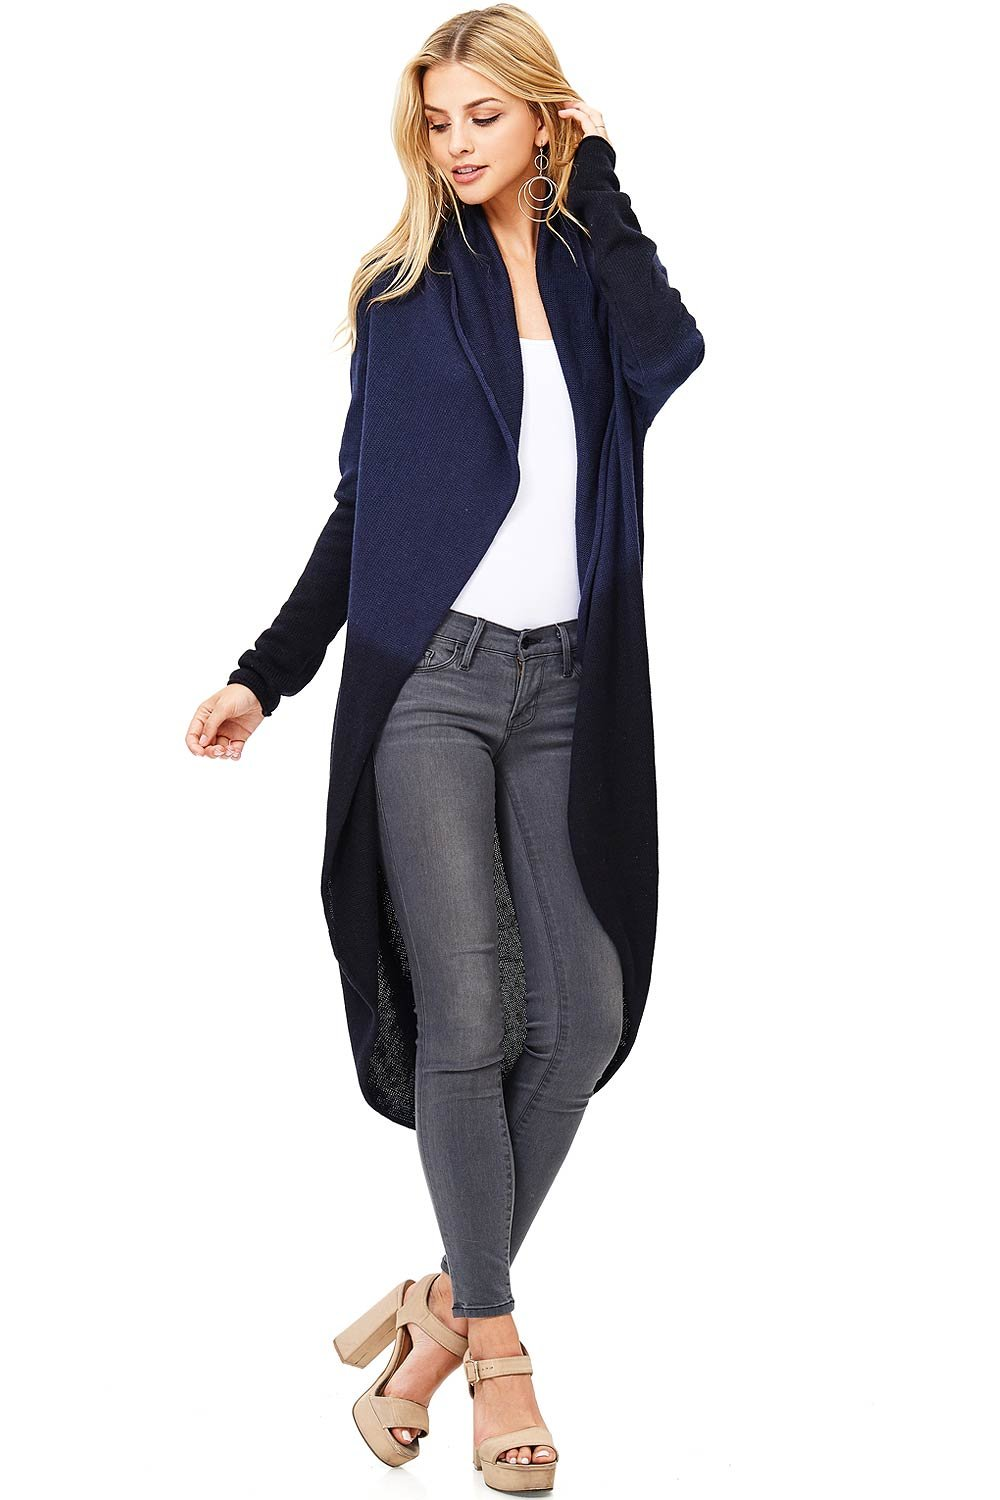 Love Stitch Women's Two Tone Knit Oversize Cardigan (L, Navy)